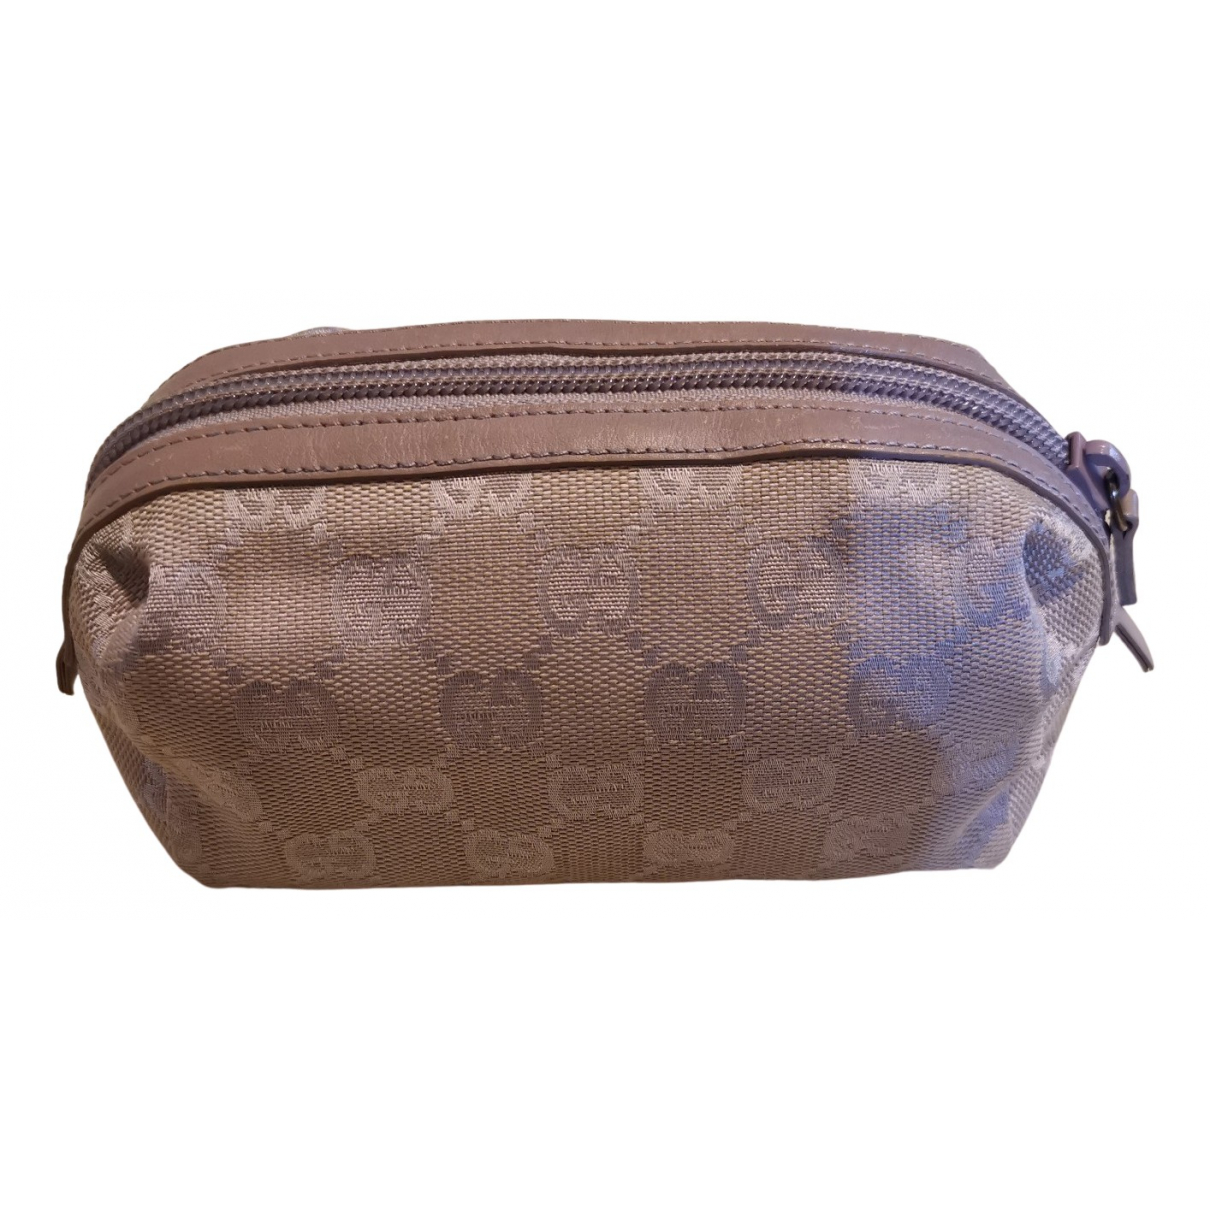 Gucci N Purple Cloth Purses, wallet & cases for Women N